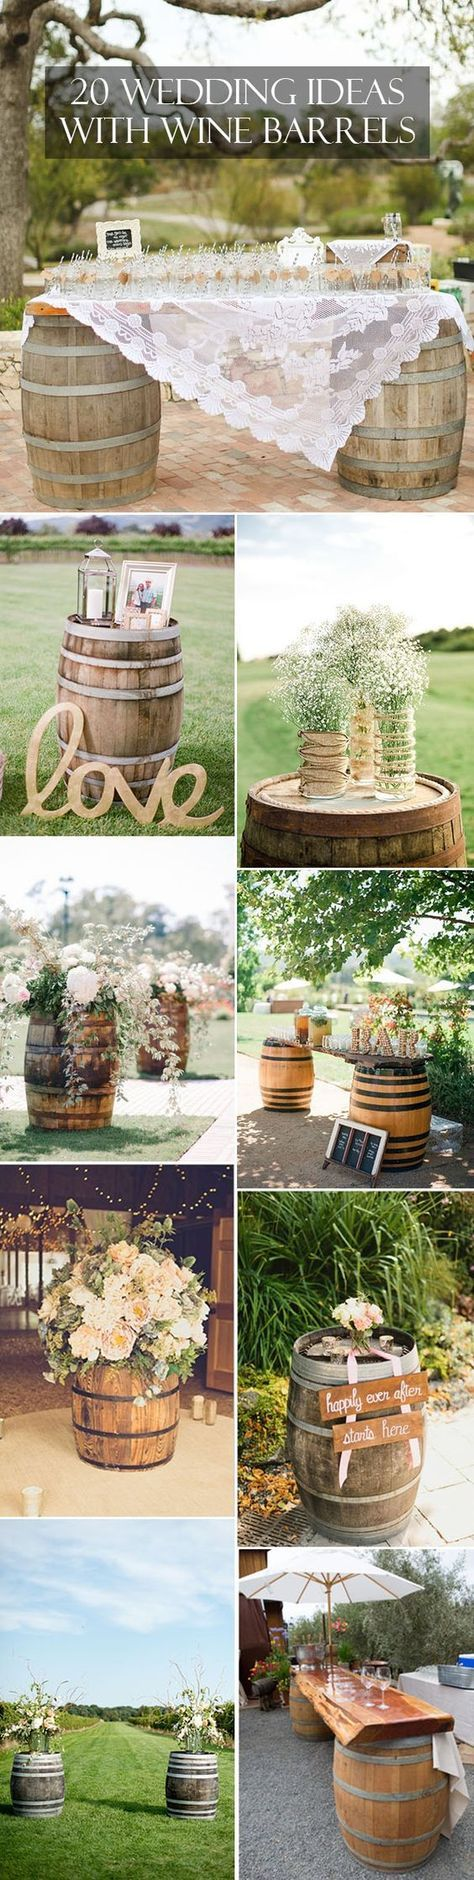 best wedding images on pinterest weddings decor wedding